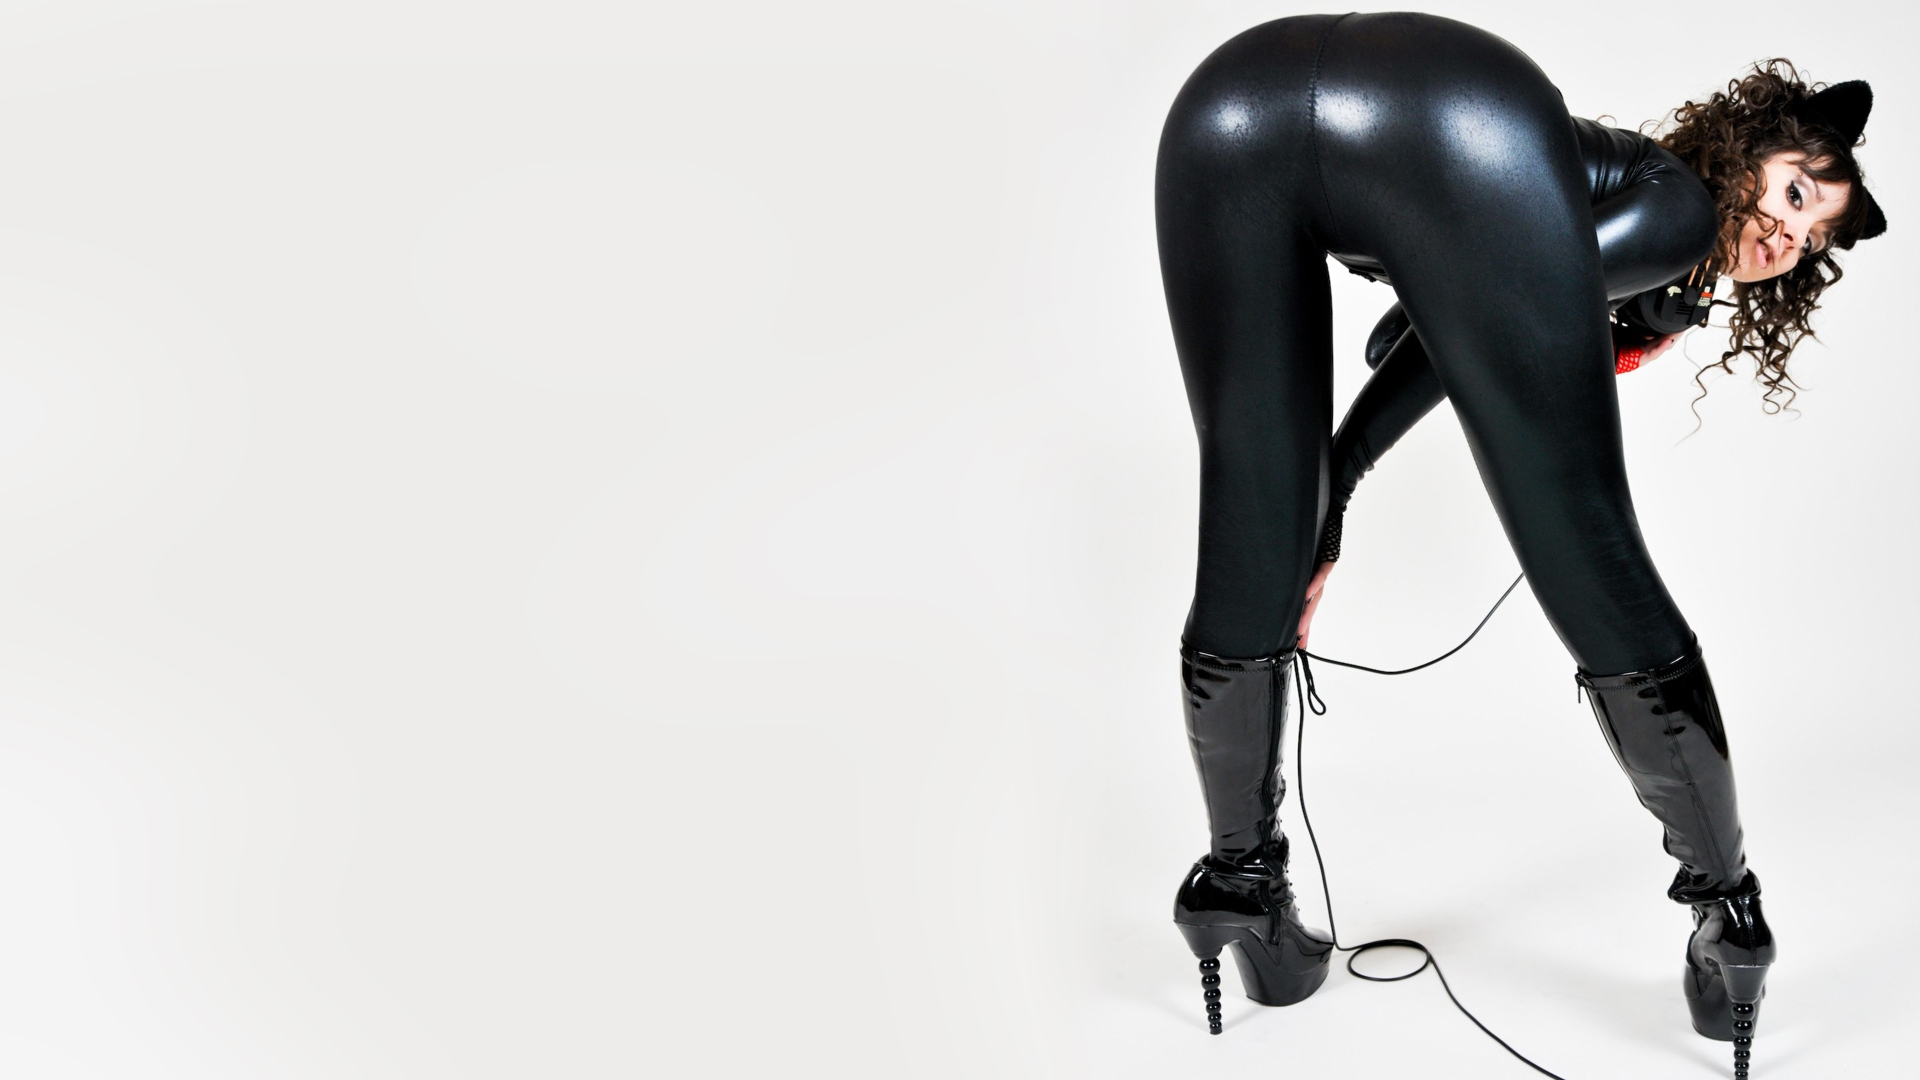 Catwoman xxx hd wallpaper nude pic